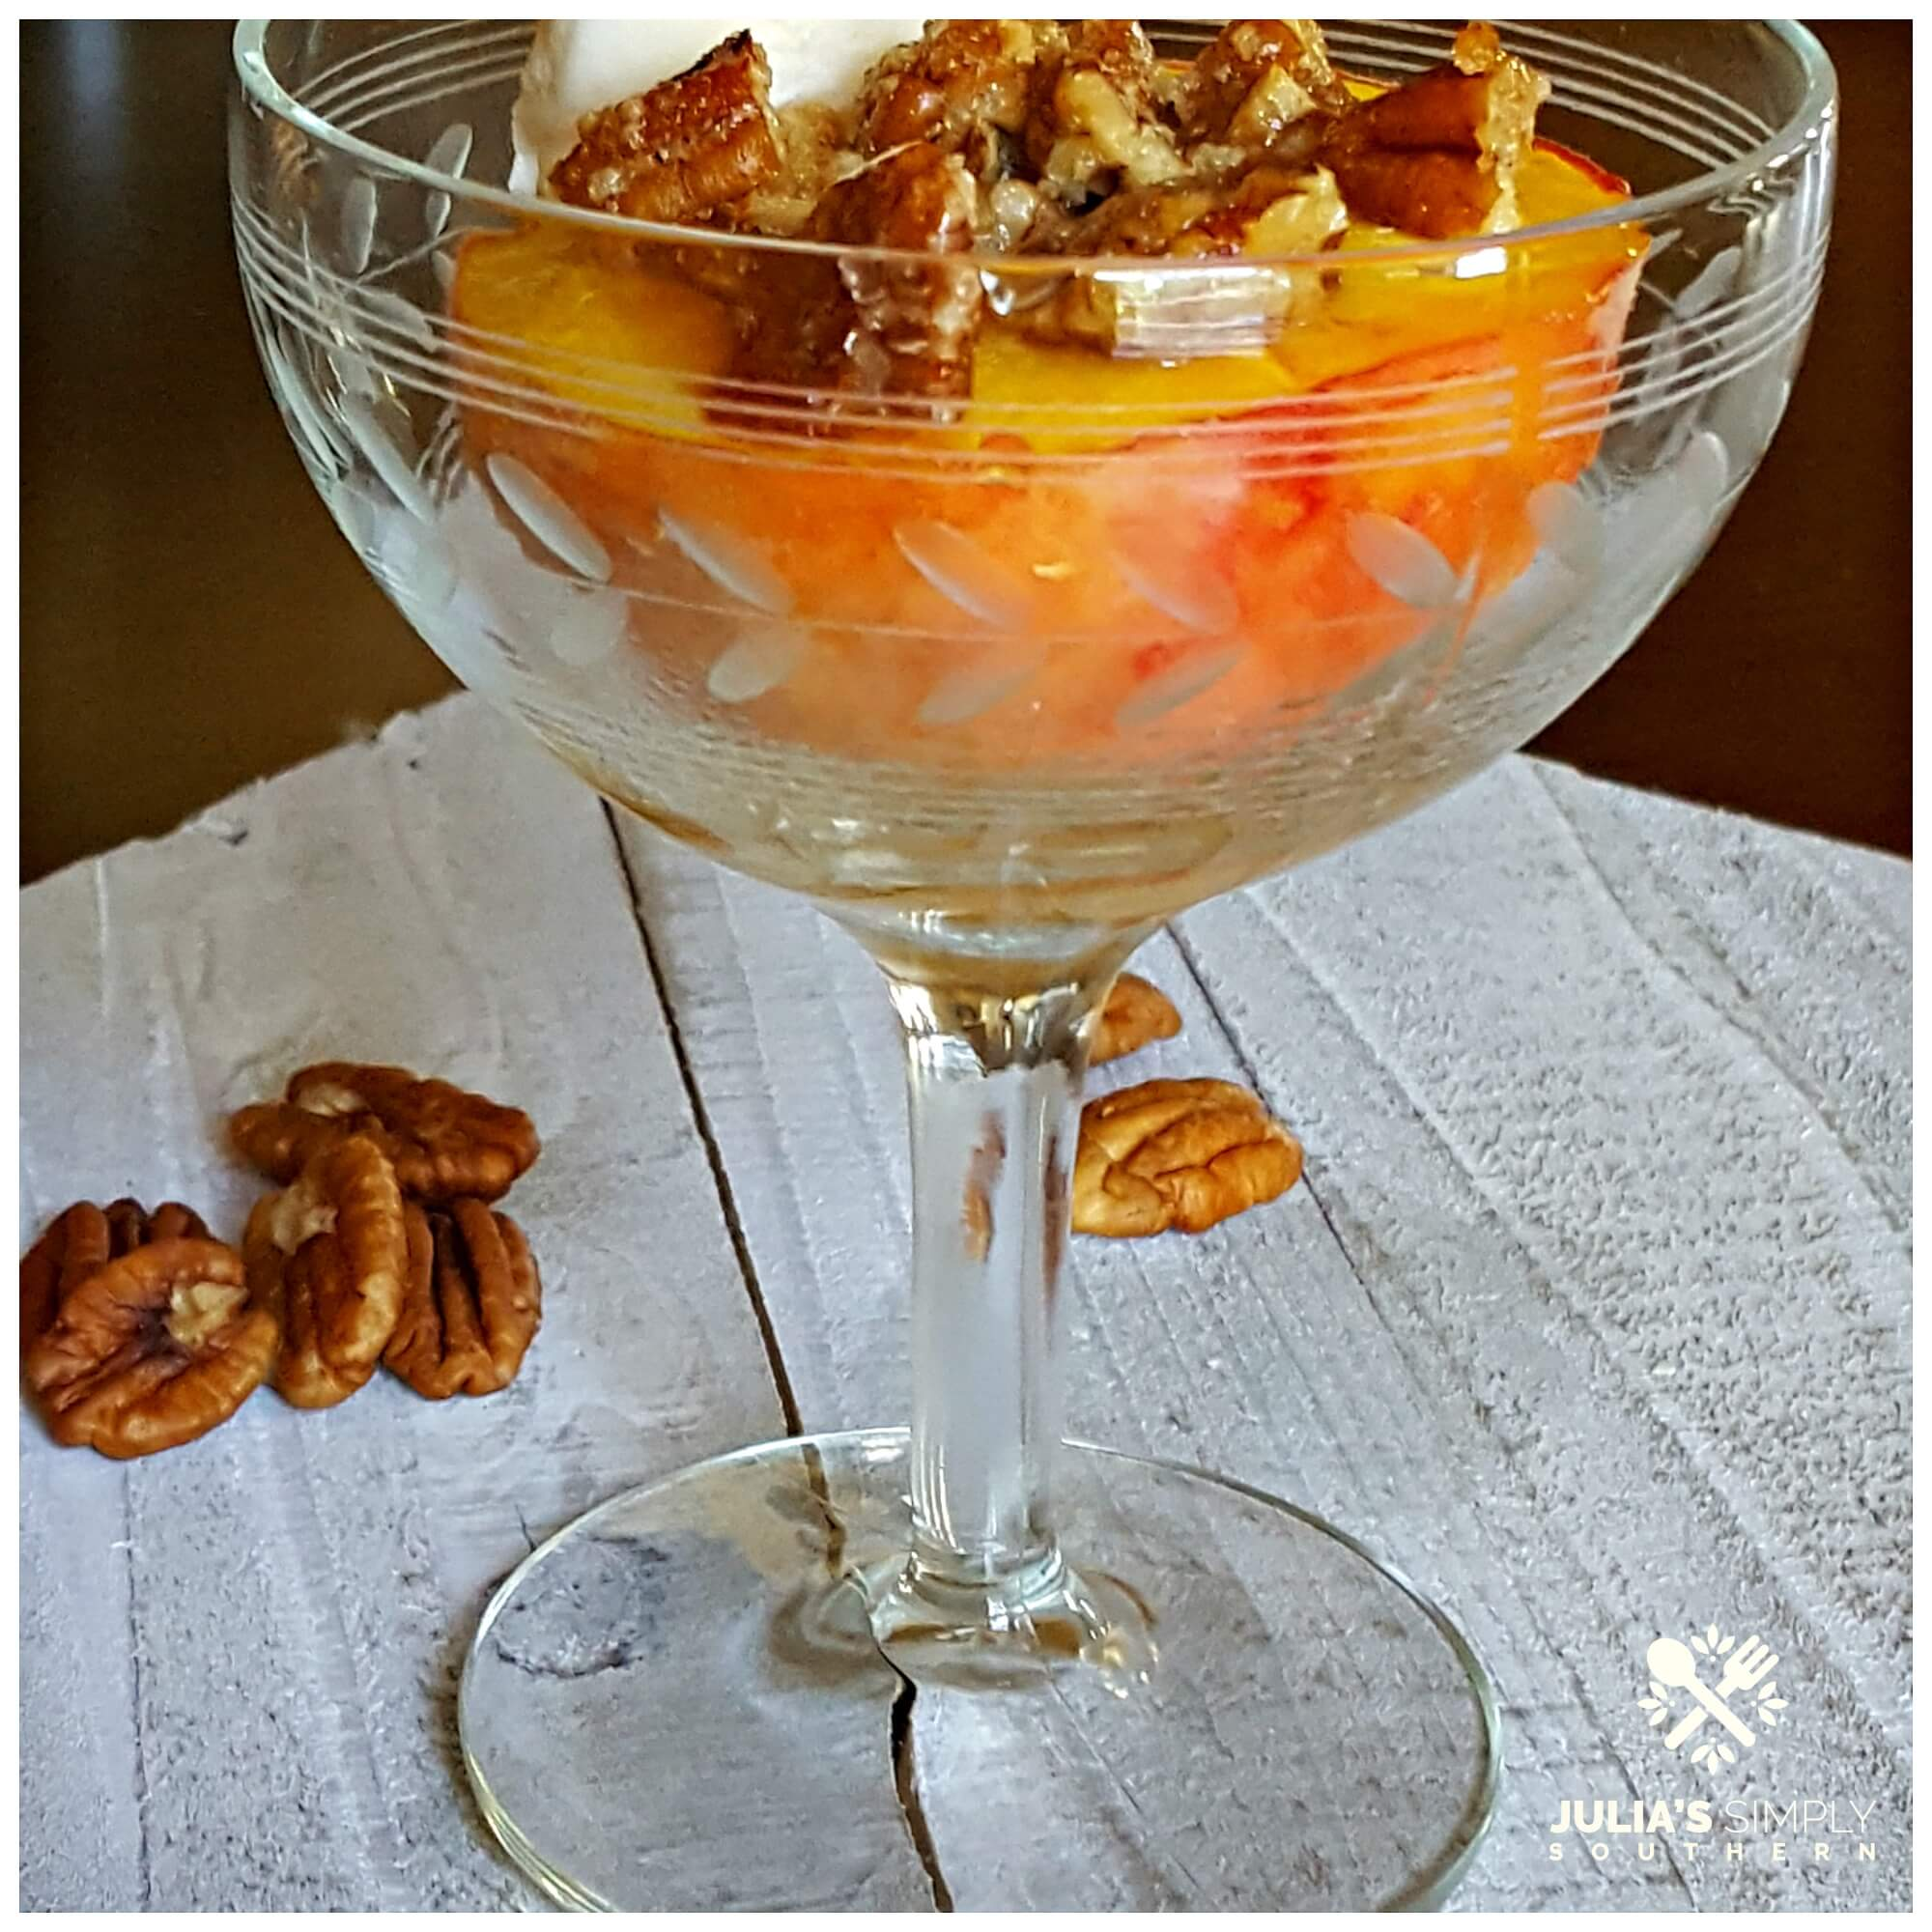 Bourbon Peach Baked Dessert in an antique crystal glass